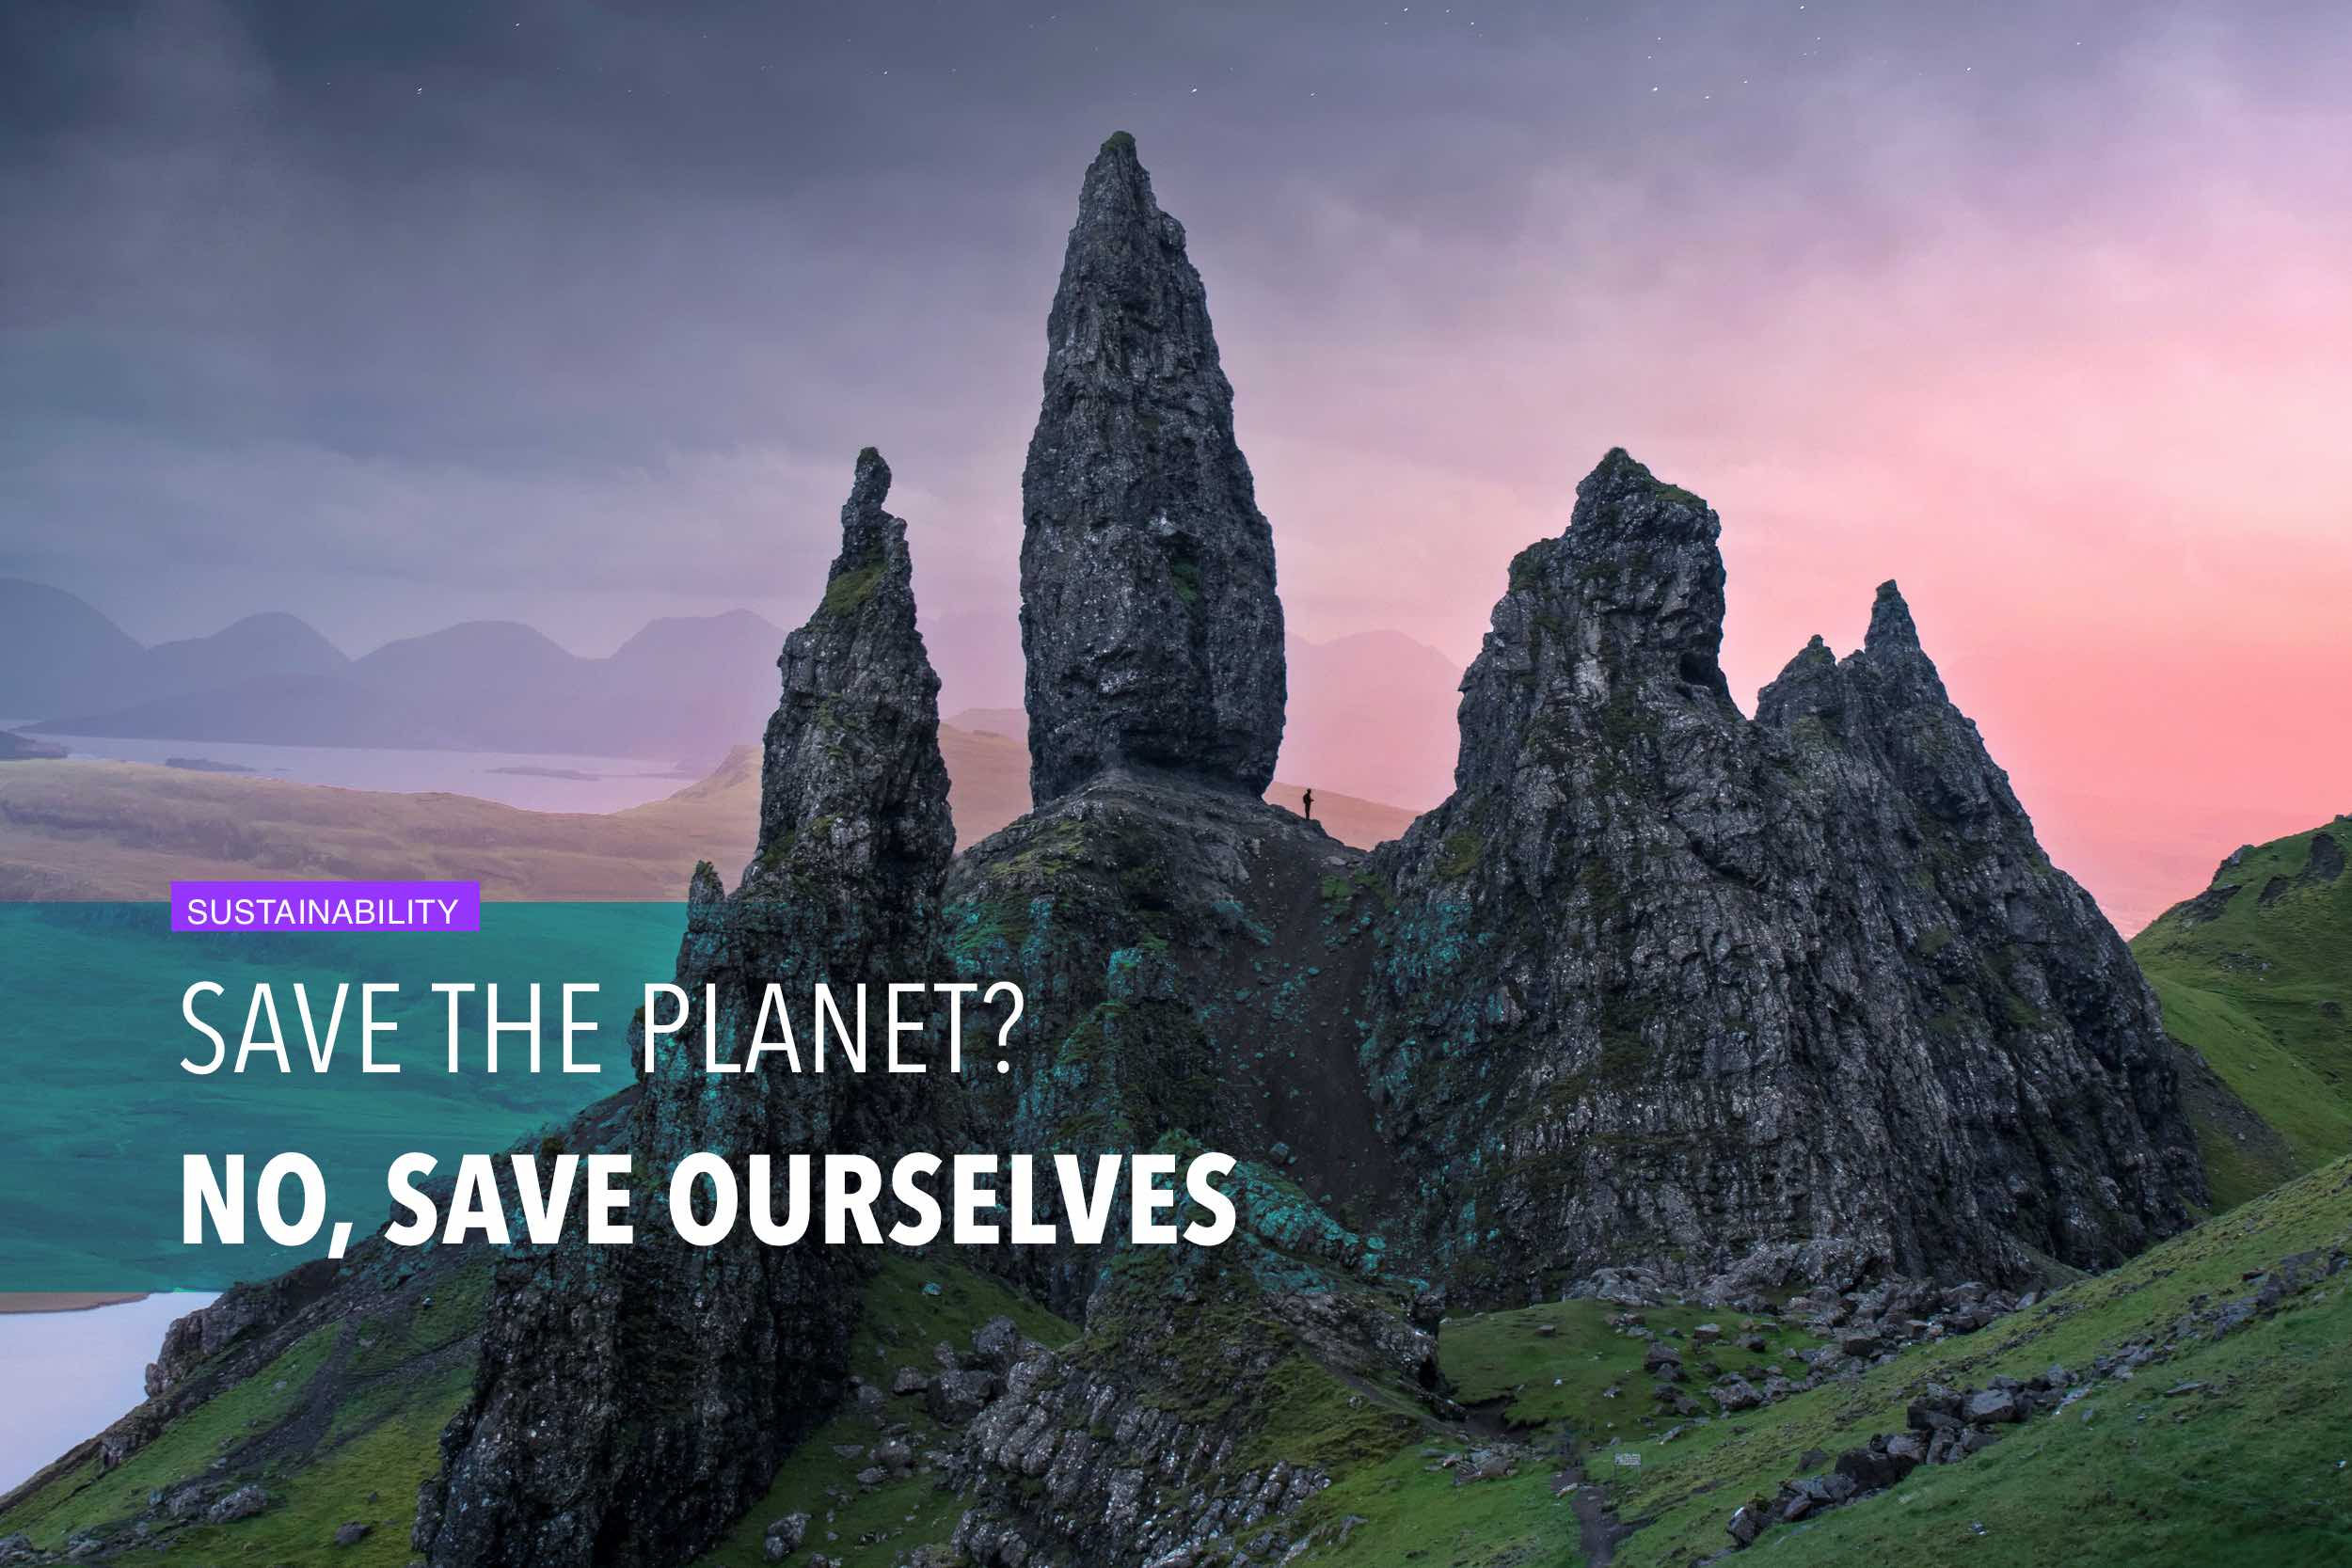 Save the planet? No, save ourselves